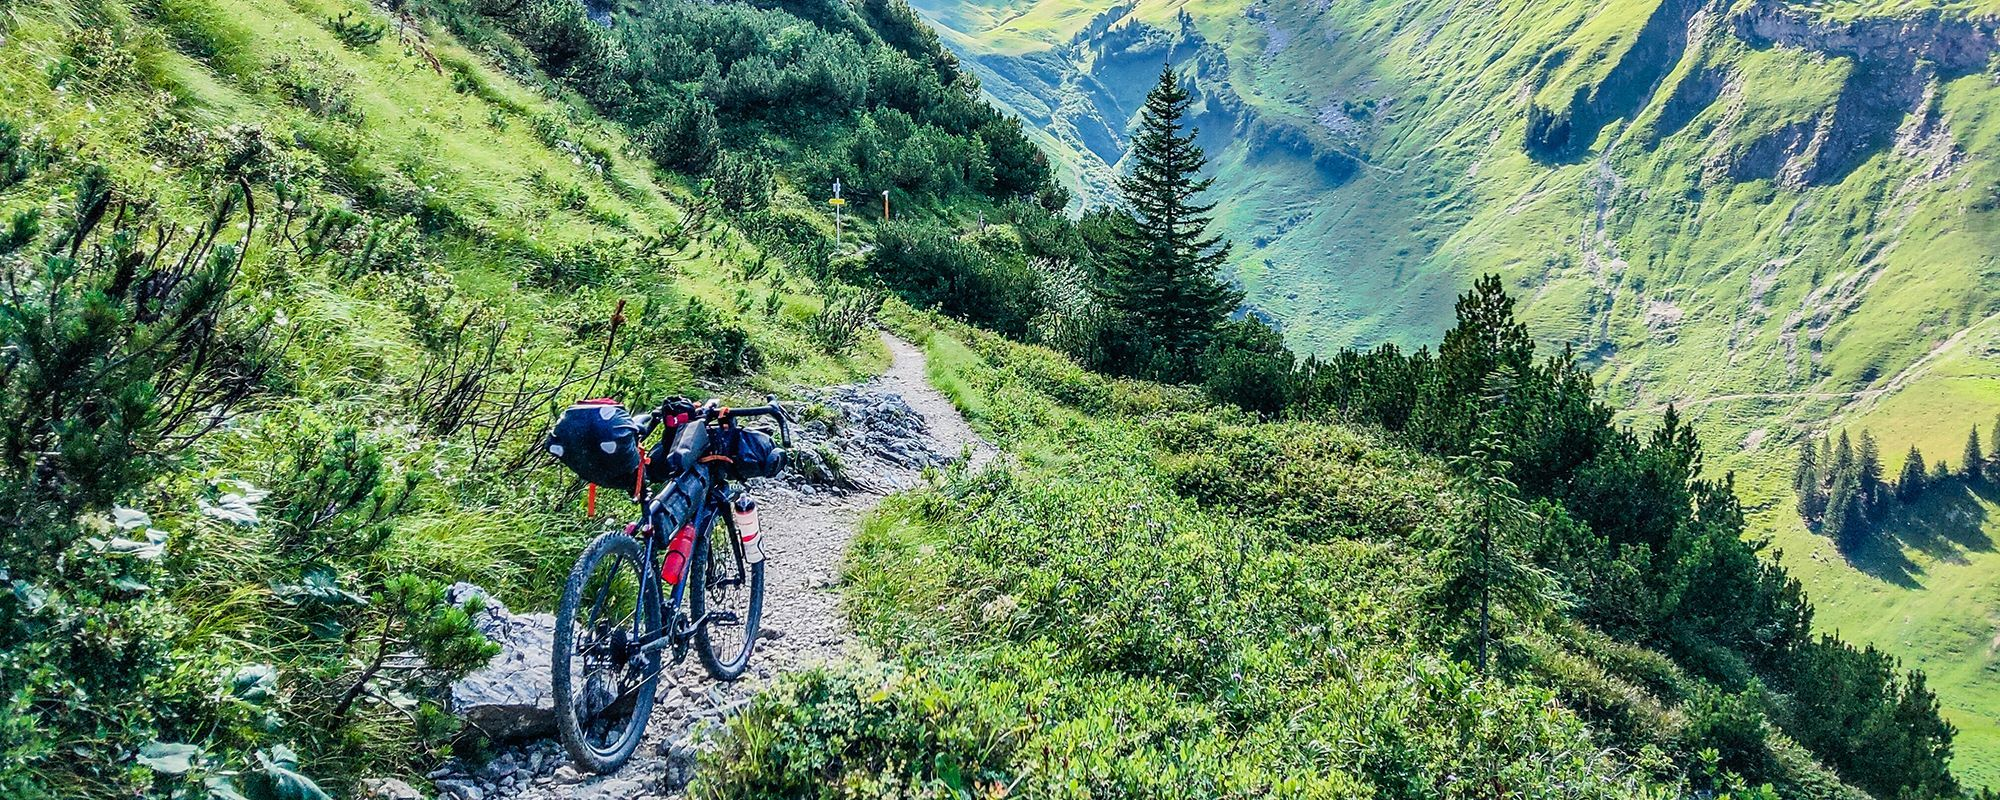 Legendary Schrofenpass: MTB highlight in the Alps (route and all info)